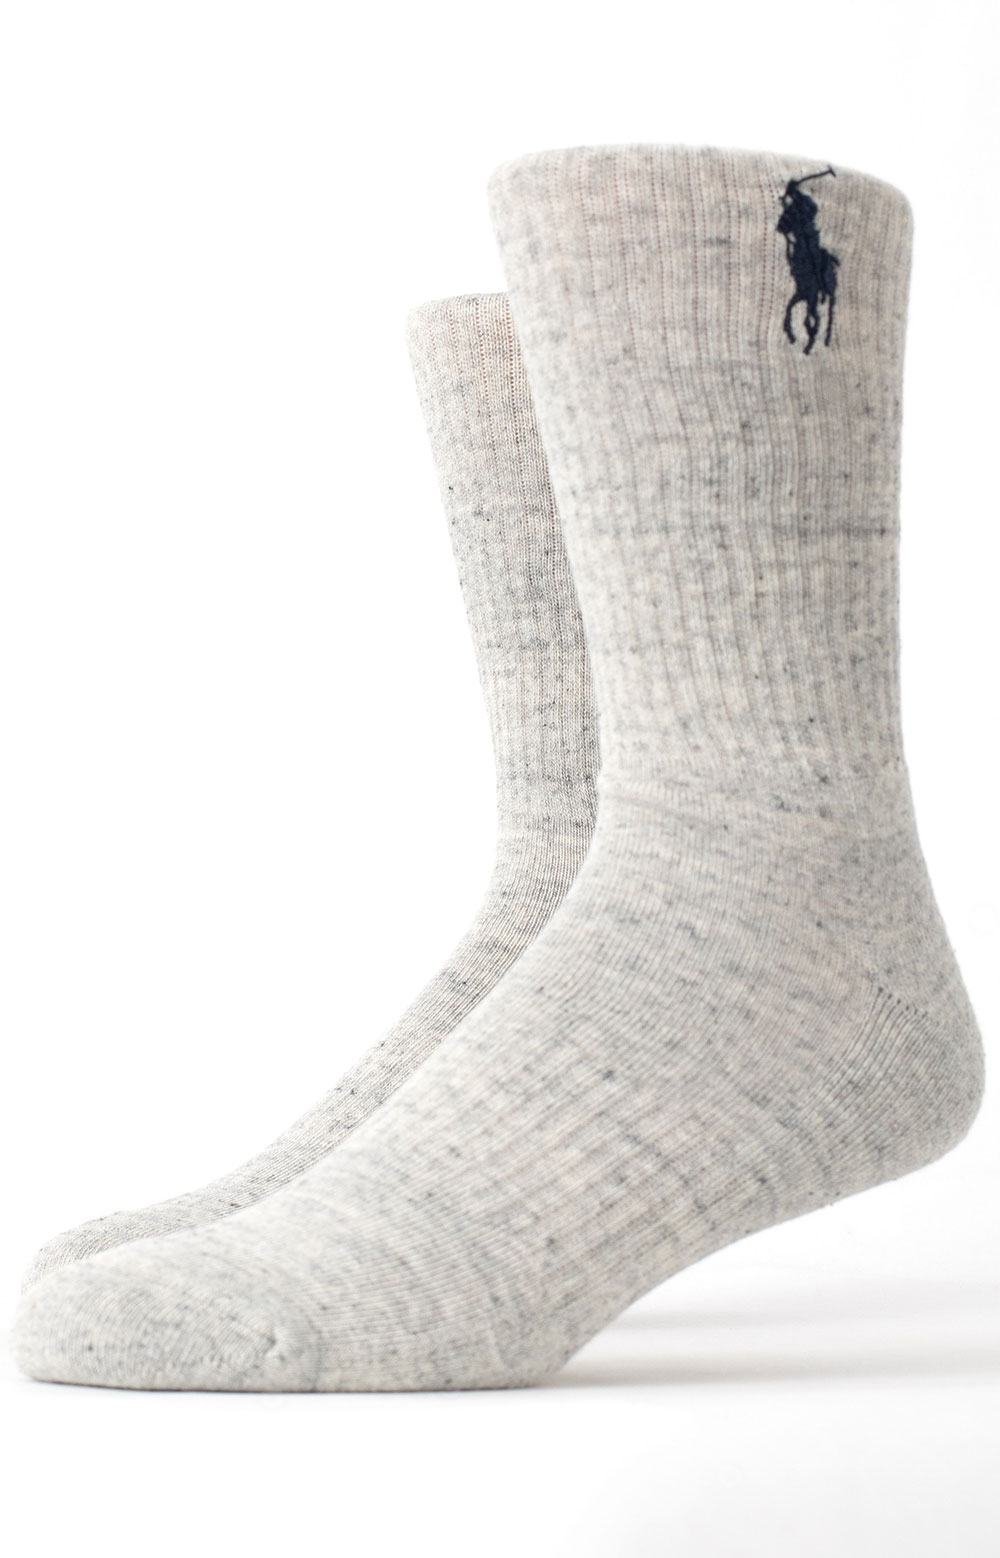 Embroidered Big Pony Crew 3 Pack Socks - Navy Assorted  4